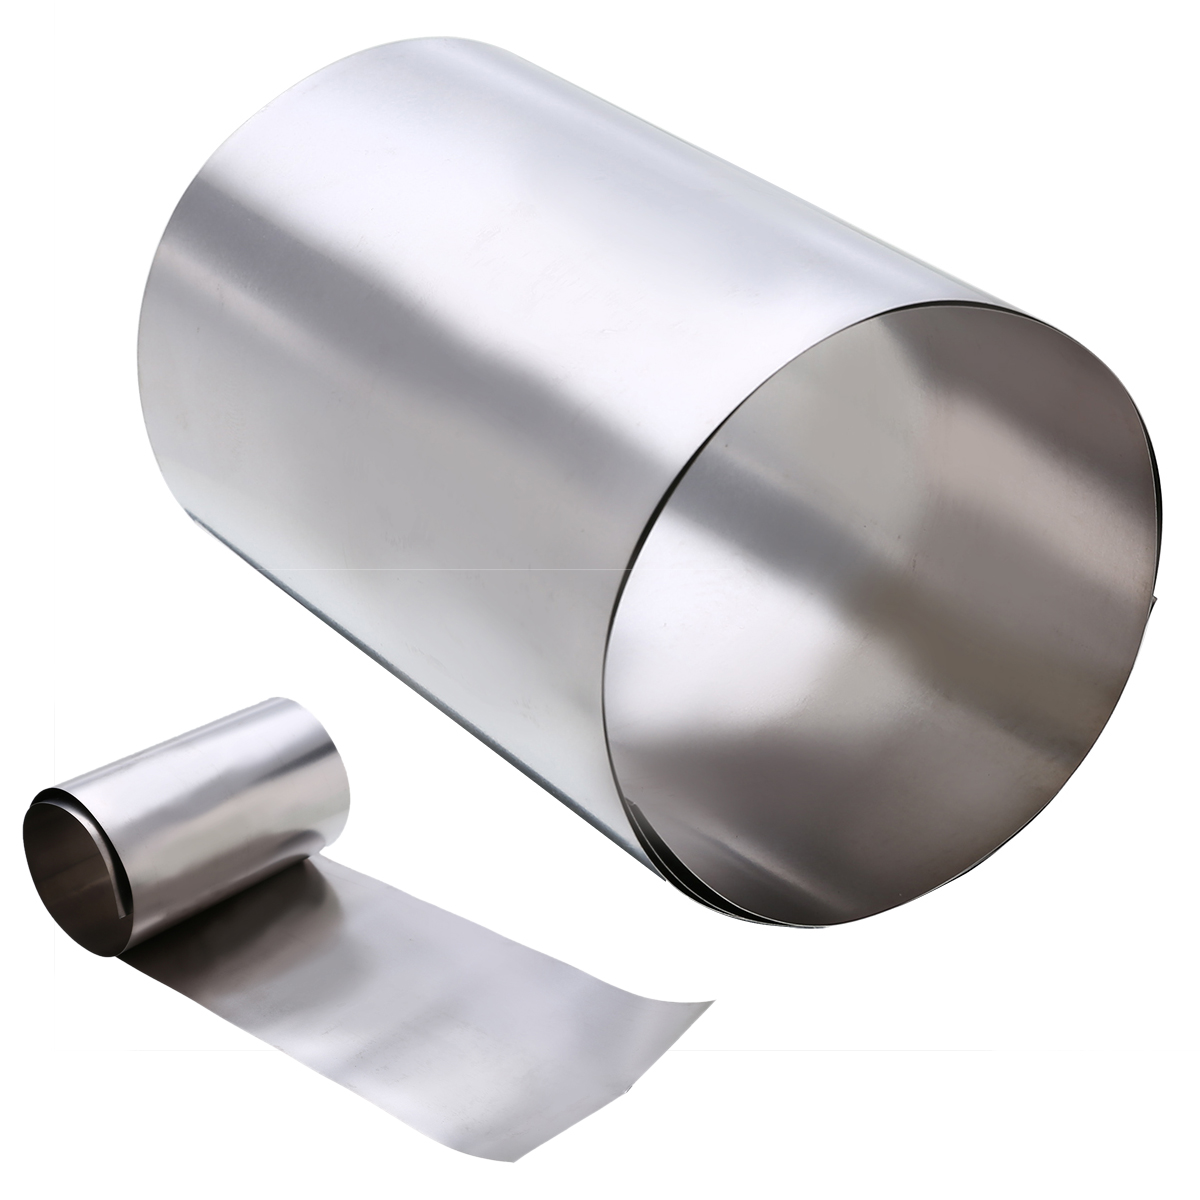 US $2 78 37% OFF|1pc Ti Gr2 Titanium Thin Plate Silver Metal Square Sheet  Foil Craft 0 1x100x500mm with Corrosion Resistance-in Tool Parts from Tools